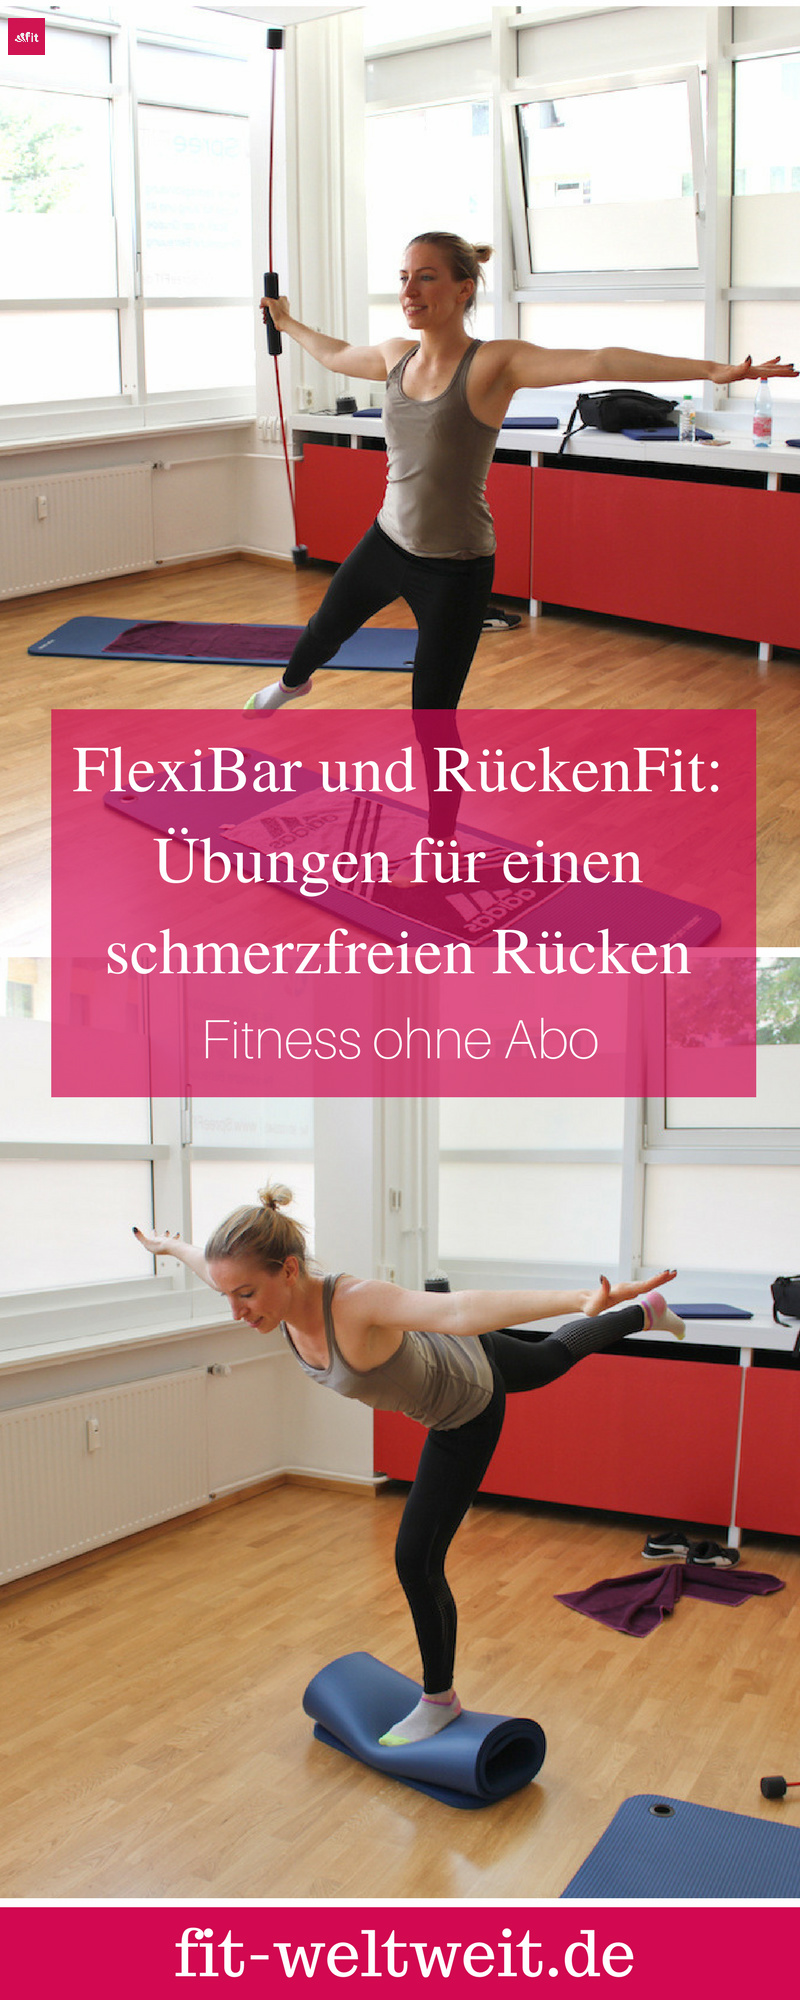 flexi bar bungen und wirkung r ckenfit mit gymflow video. Black Bedroom Furniture Sets. Home Design Ideas